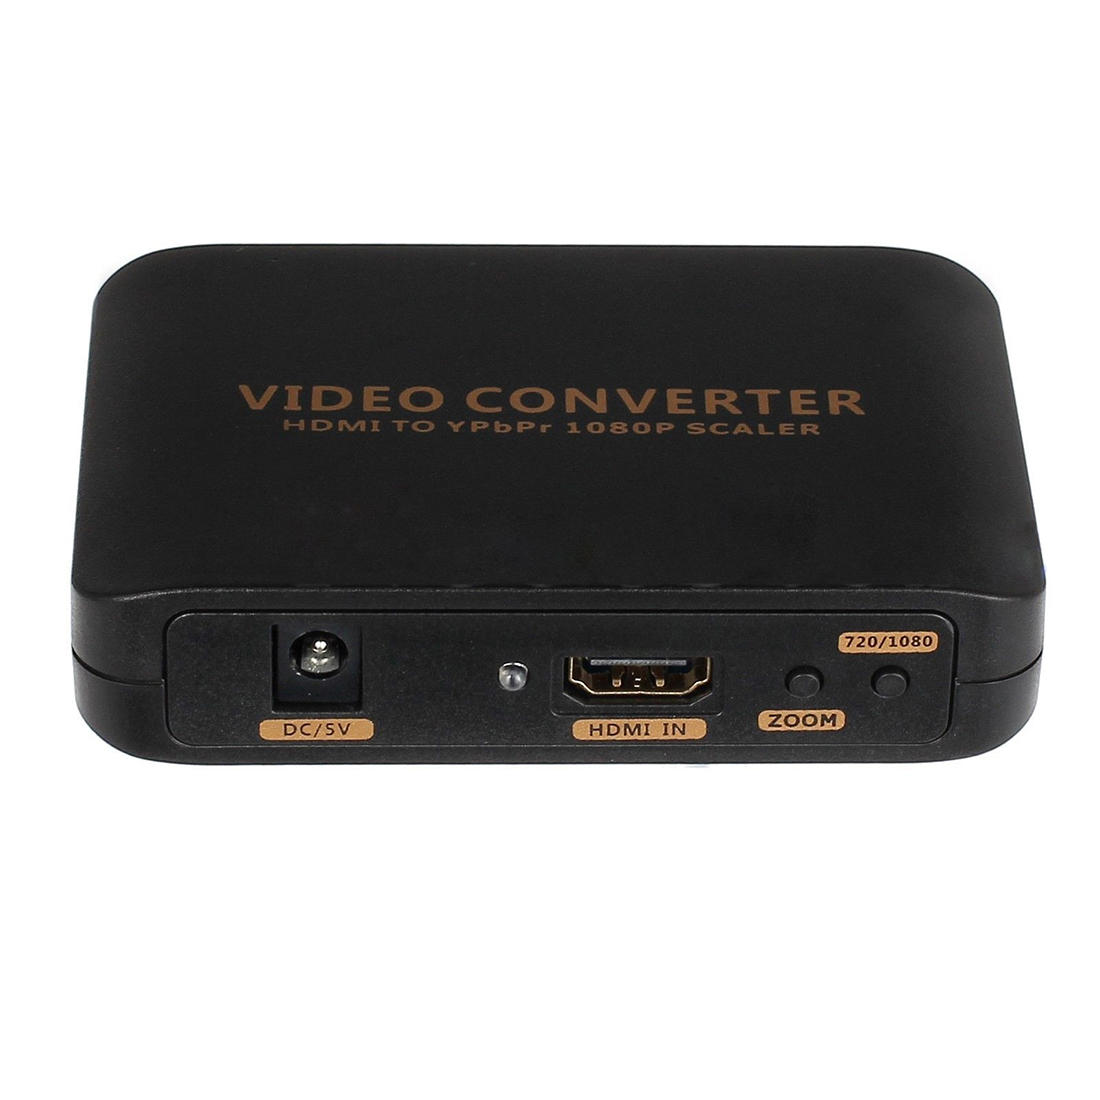 1080P HDMI to 5RCA RGB YPBPR Scaler Component Video Audio Converter For SKY HDTV 7600 component video to vga video converter change ypbpr to composite video